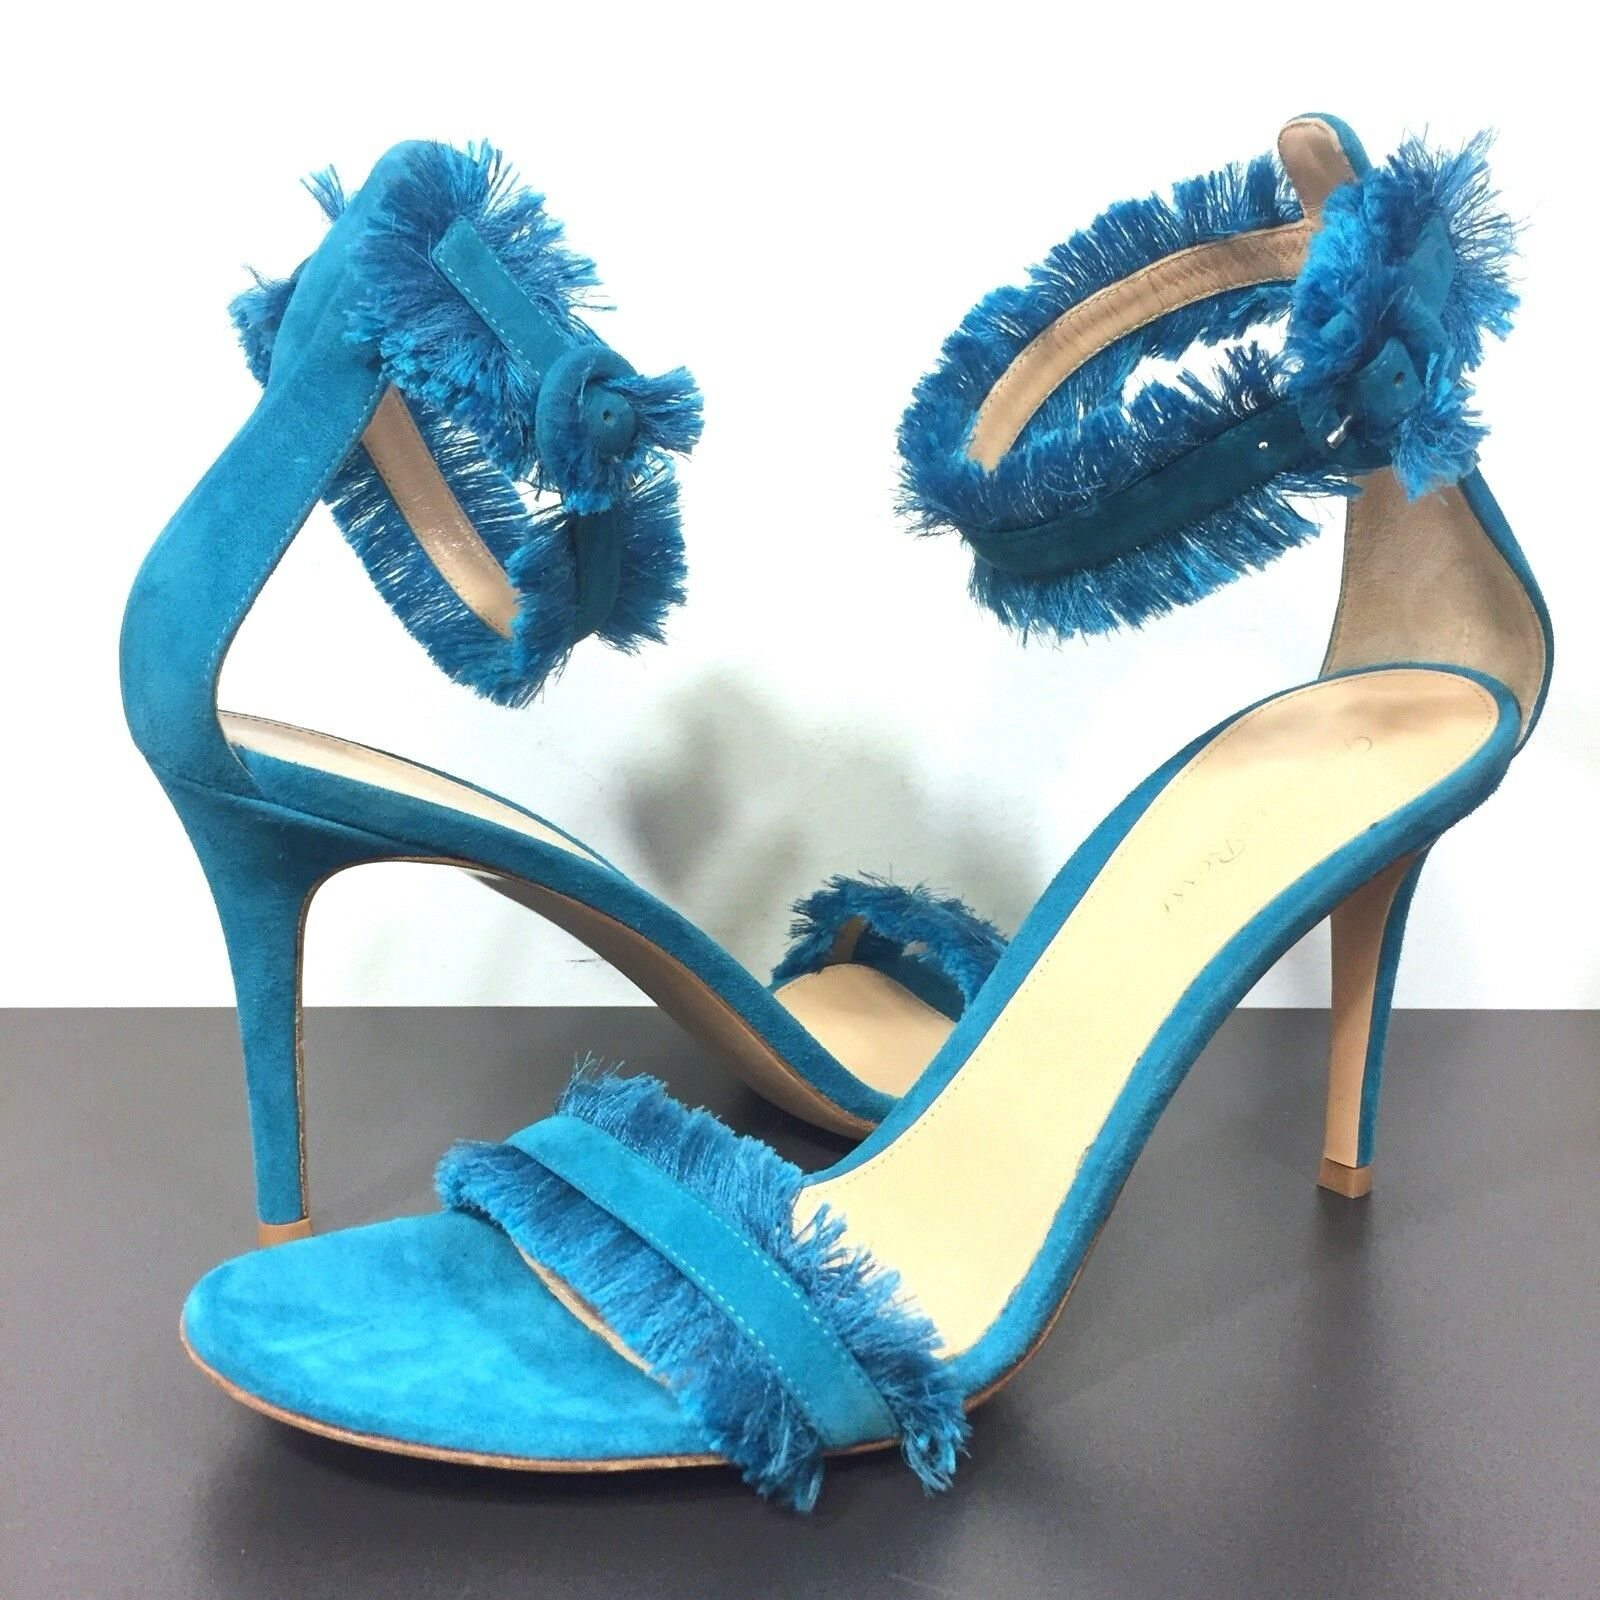 GIANVITO ROSSI Portofino Suede Fringed Ankle Buckle Sandals Blue 41 (MSRP $795)